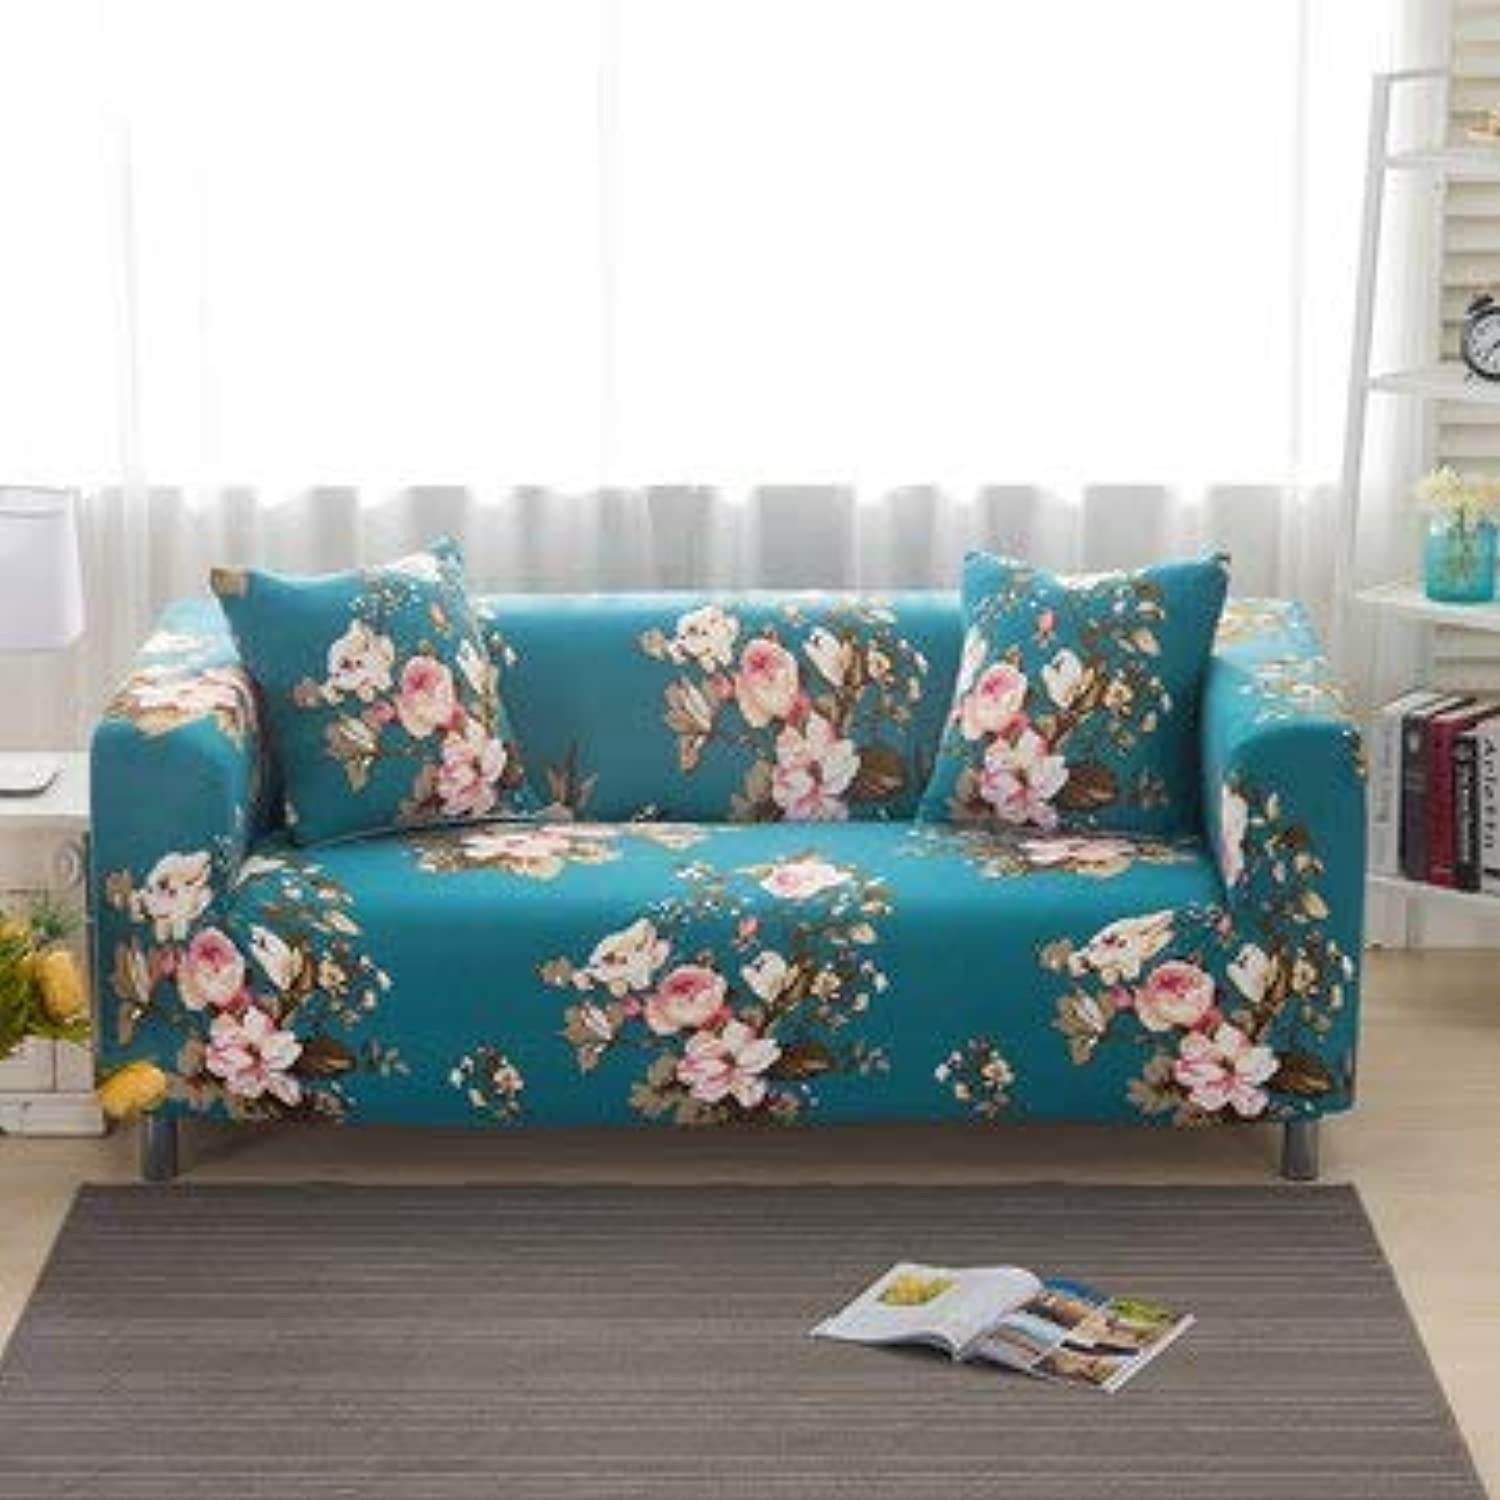 Farmerly Modern Geometric Floral Printing Spandex Stretch Elastic All-Inclusive Sofa Slip Cover Predector Removable Anti-Dirty Couch Case   20, Tow Seater